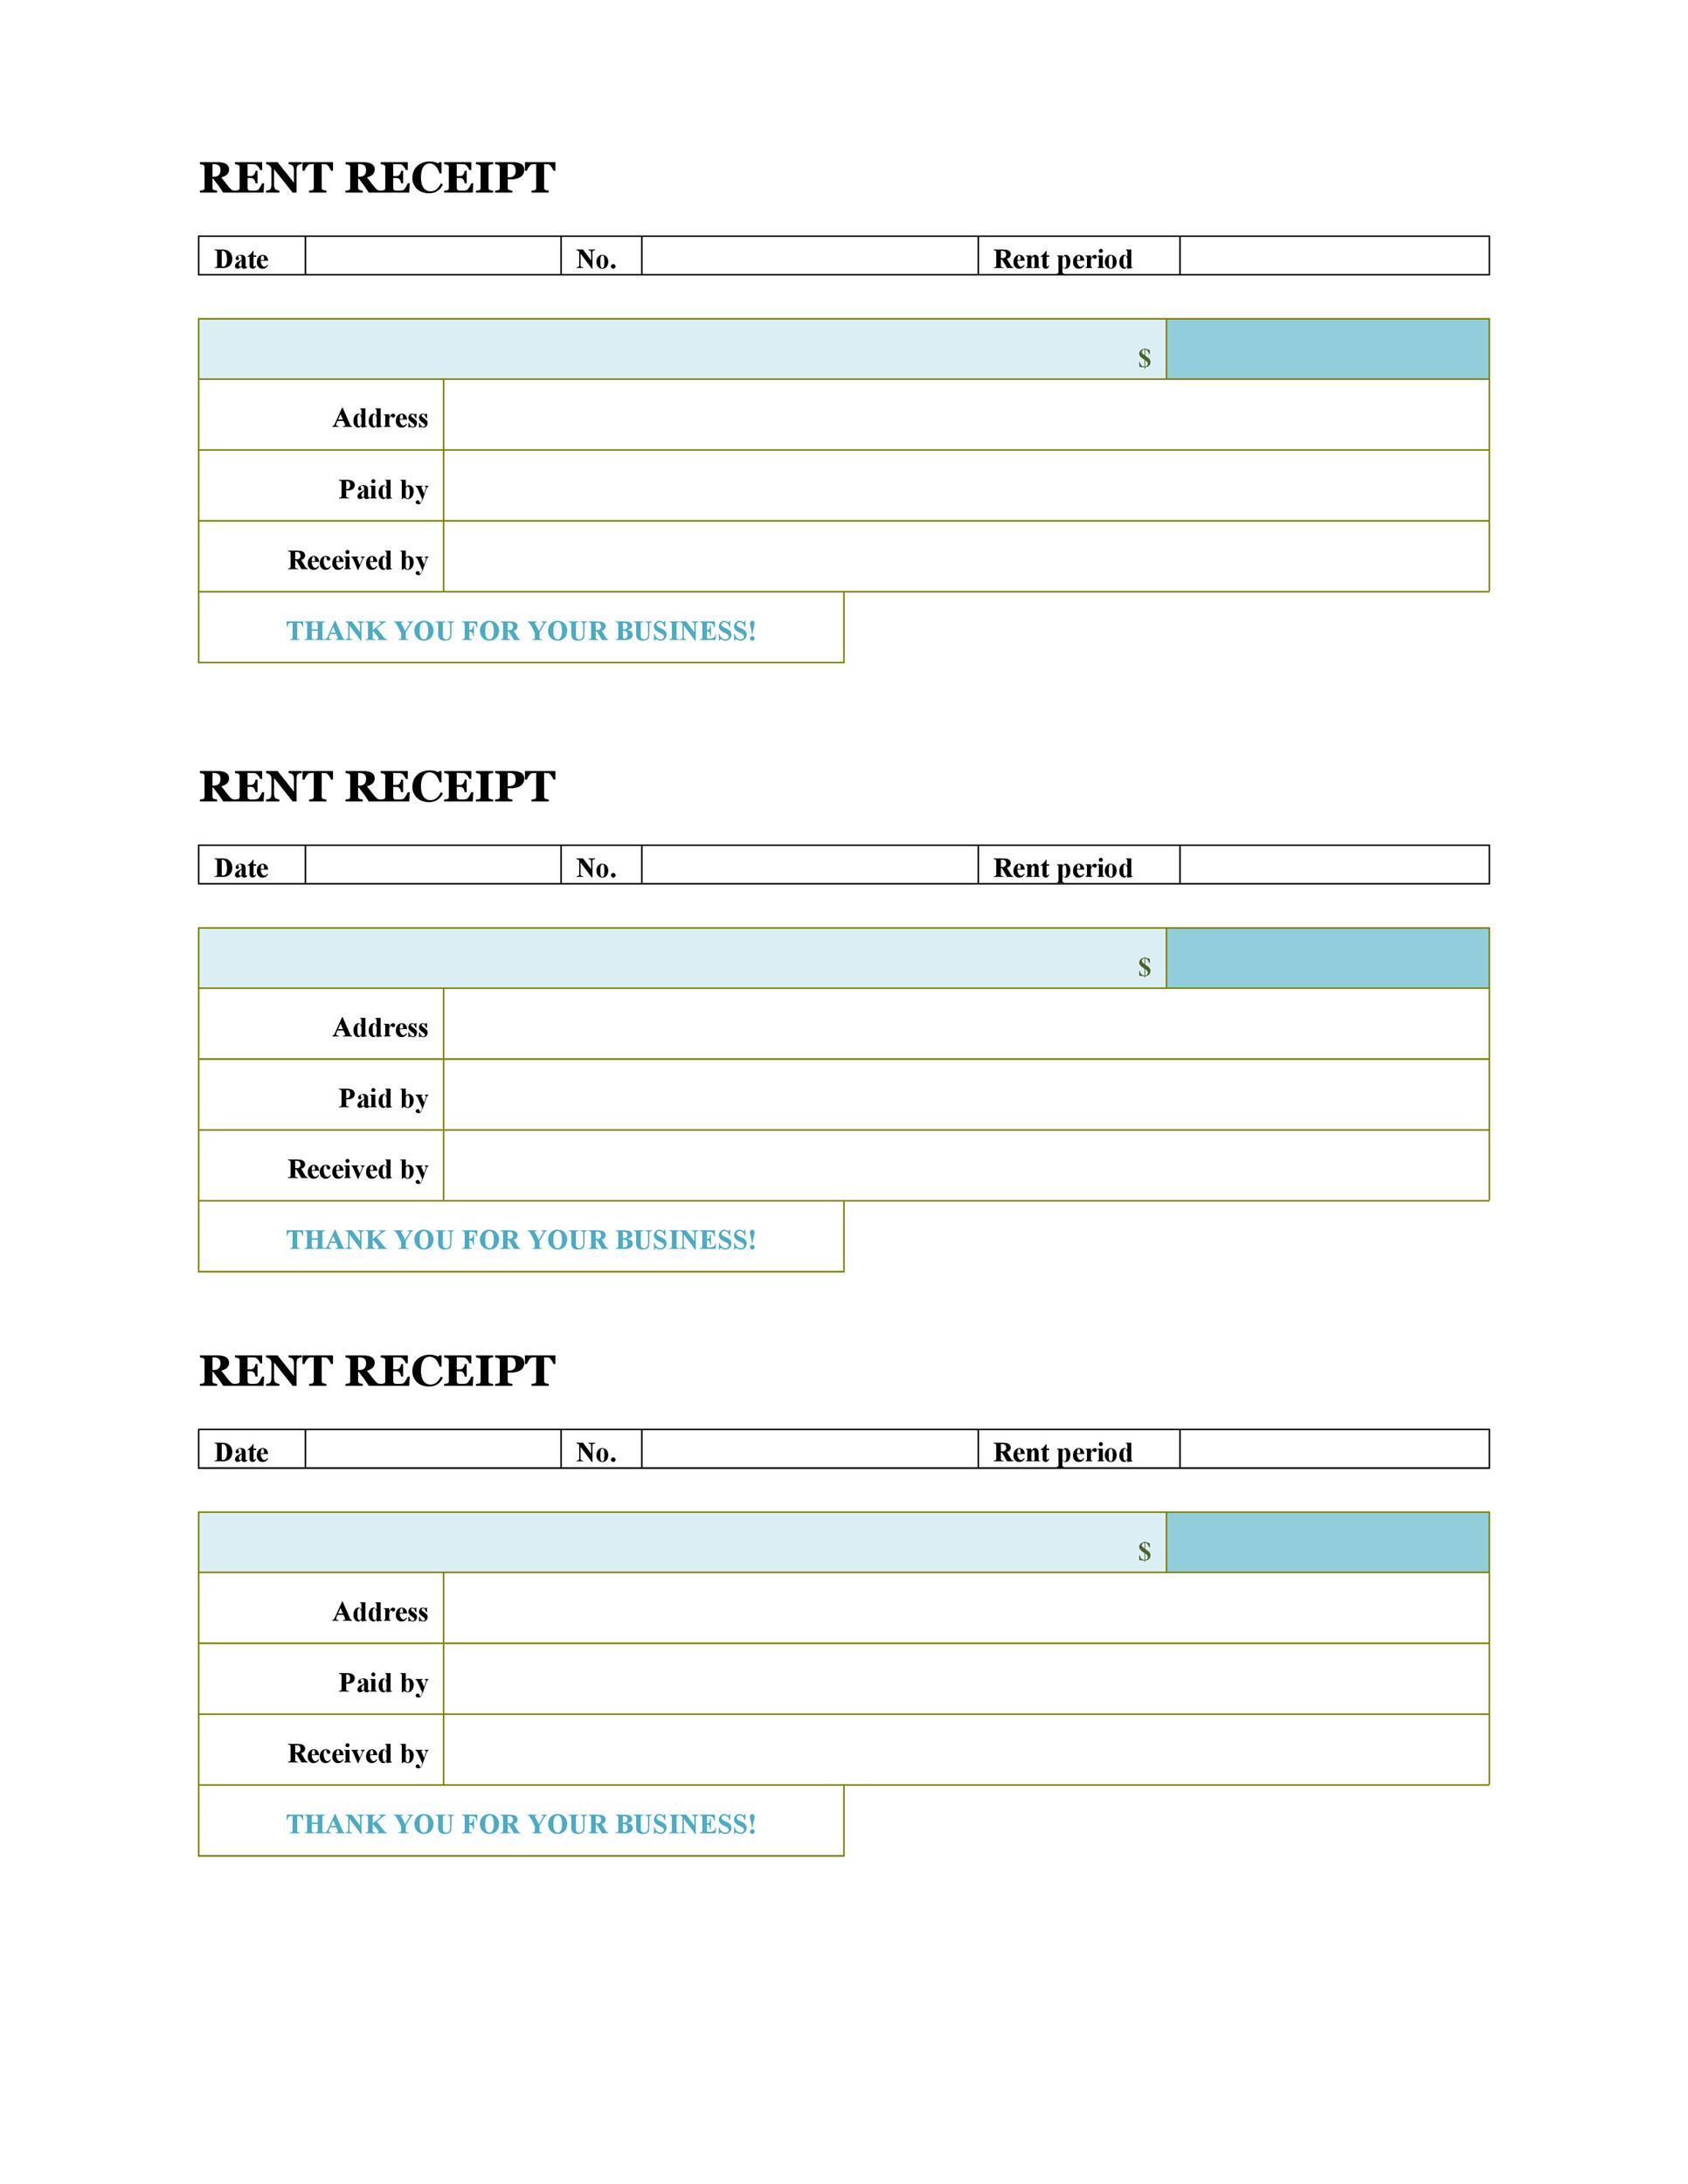 The Rent Receipt Template